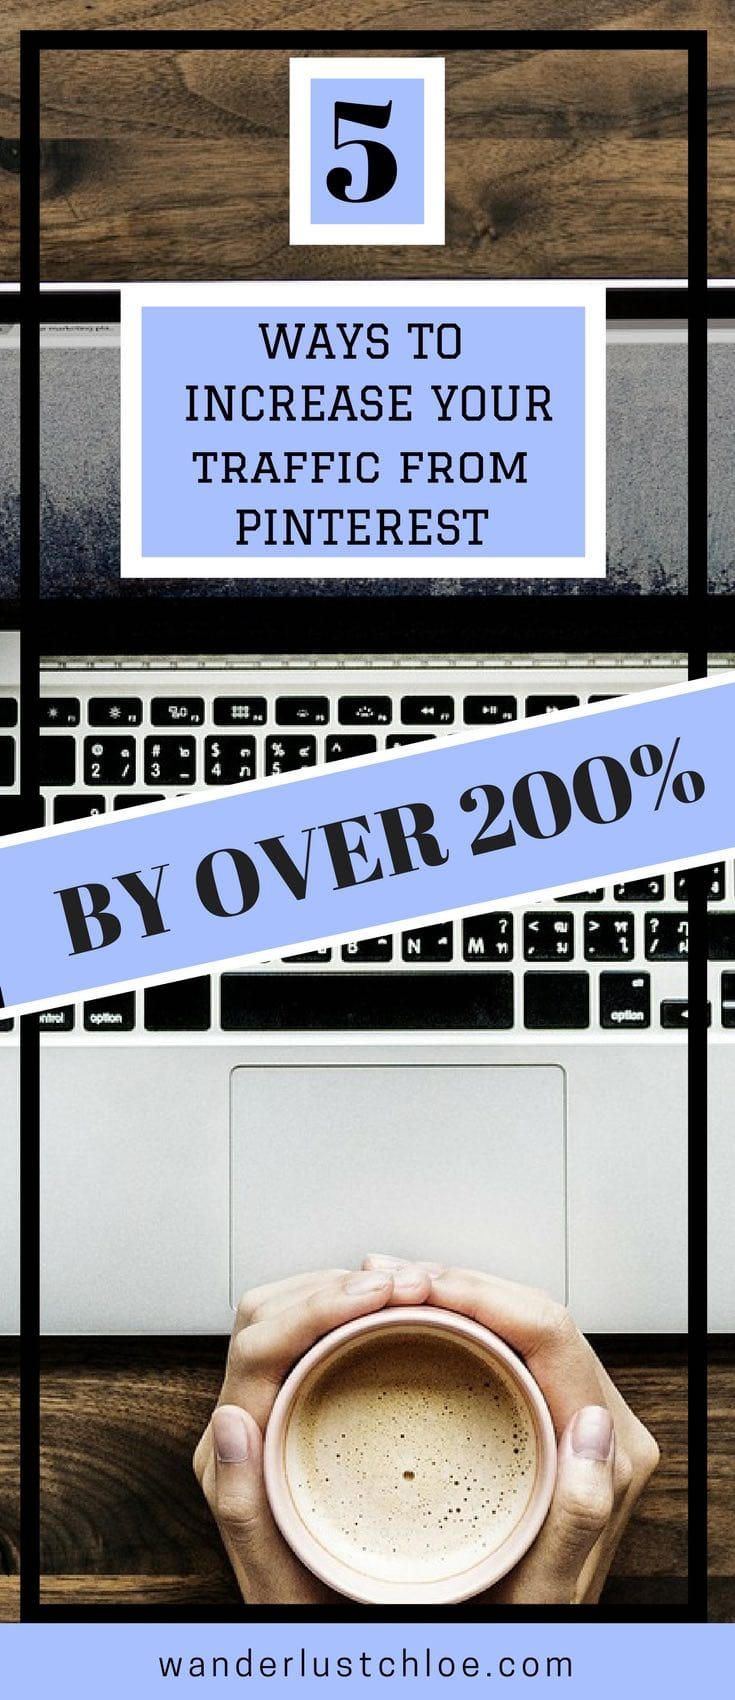 5 Ways To Increase Your Traffic From Pinterest